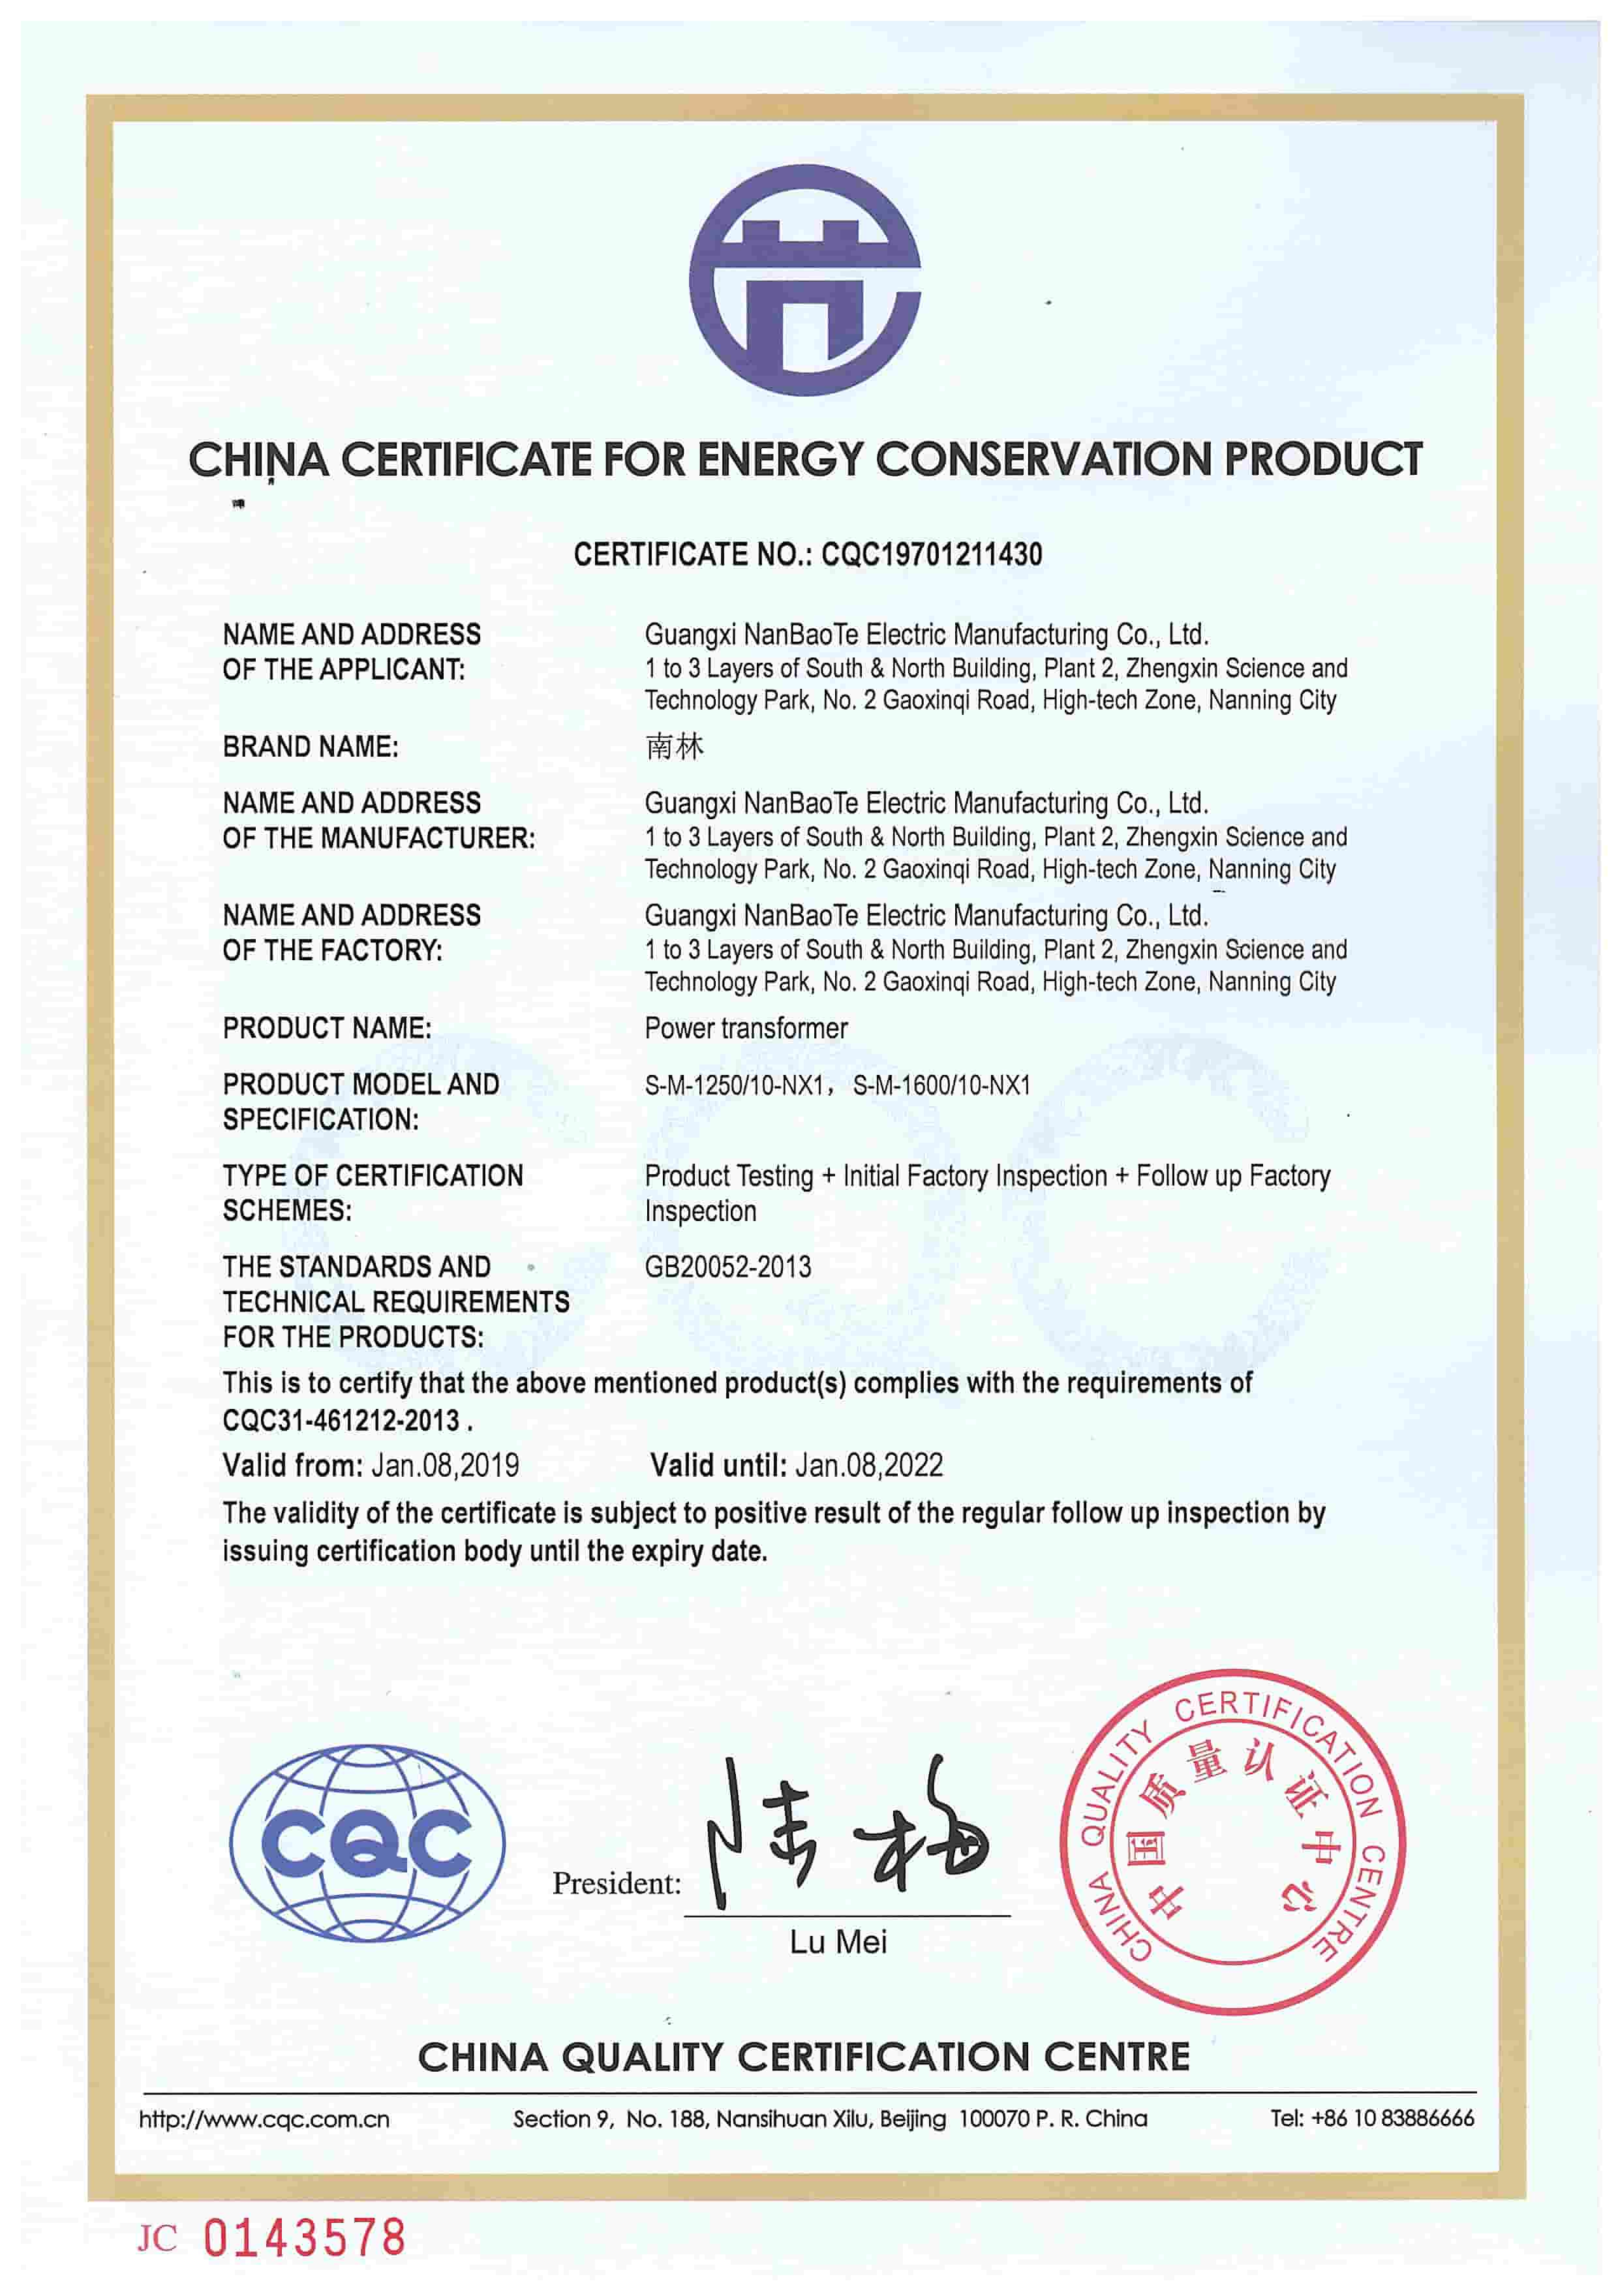 Energy Conservation Product Certificate S-M-1250~1600-NX1